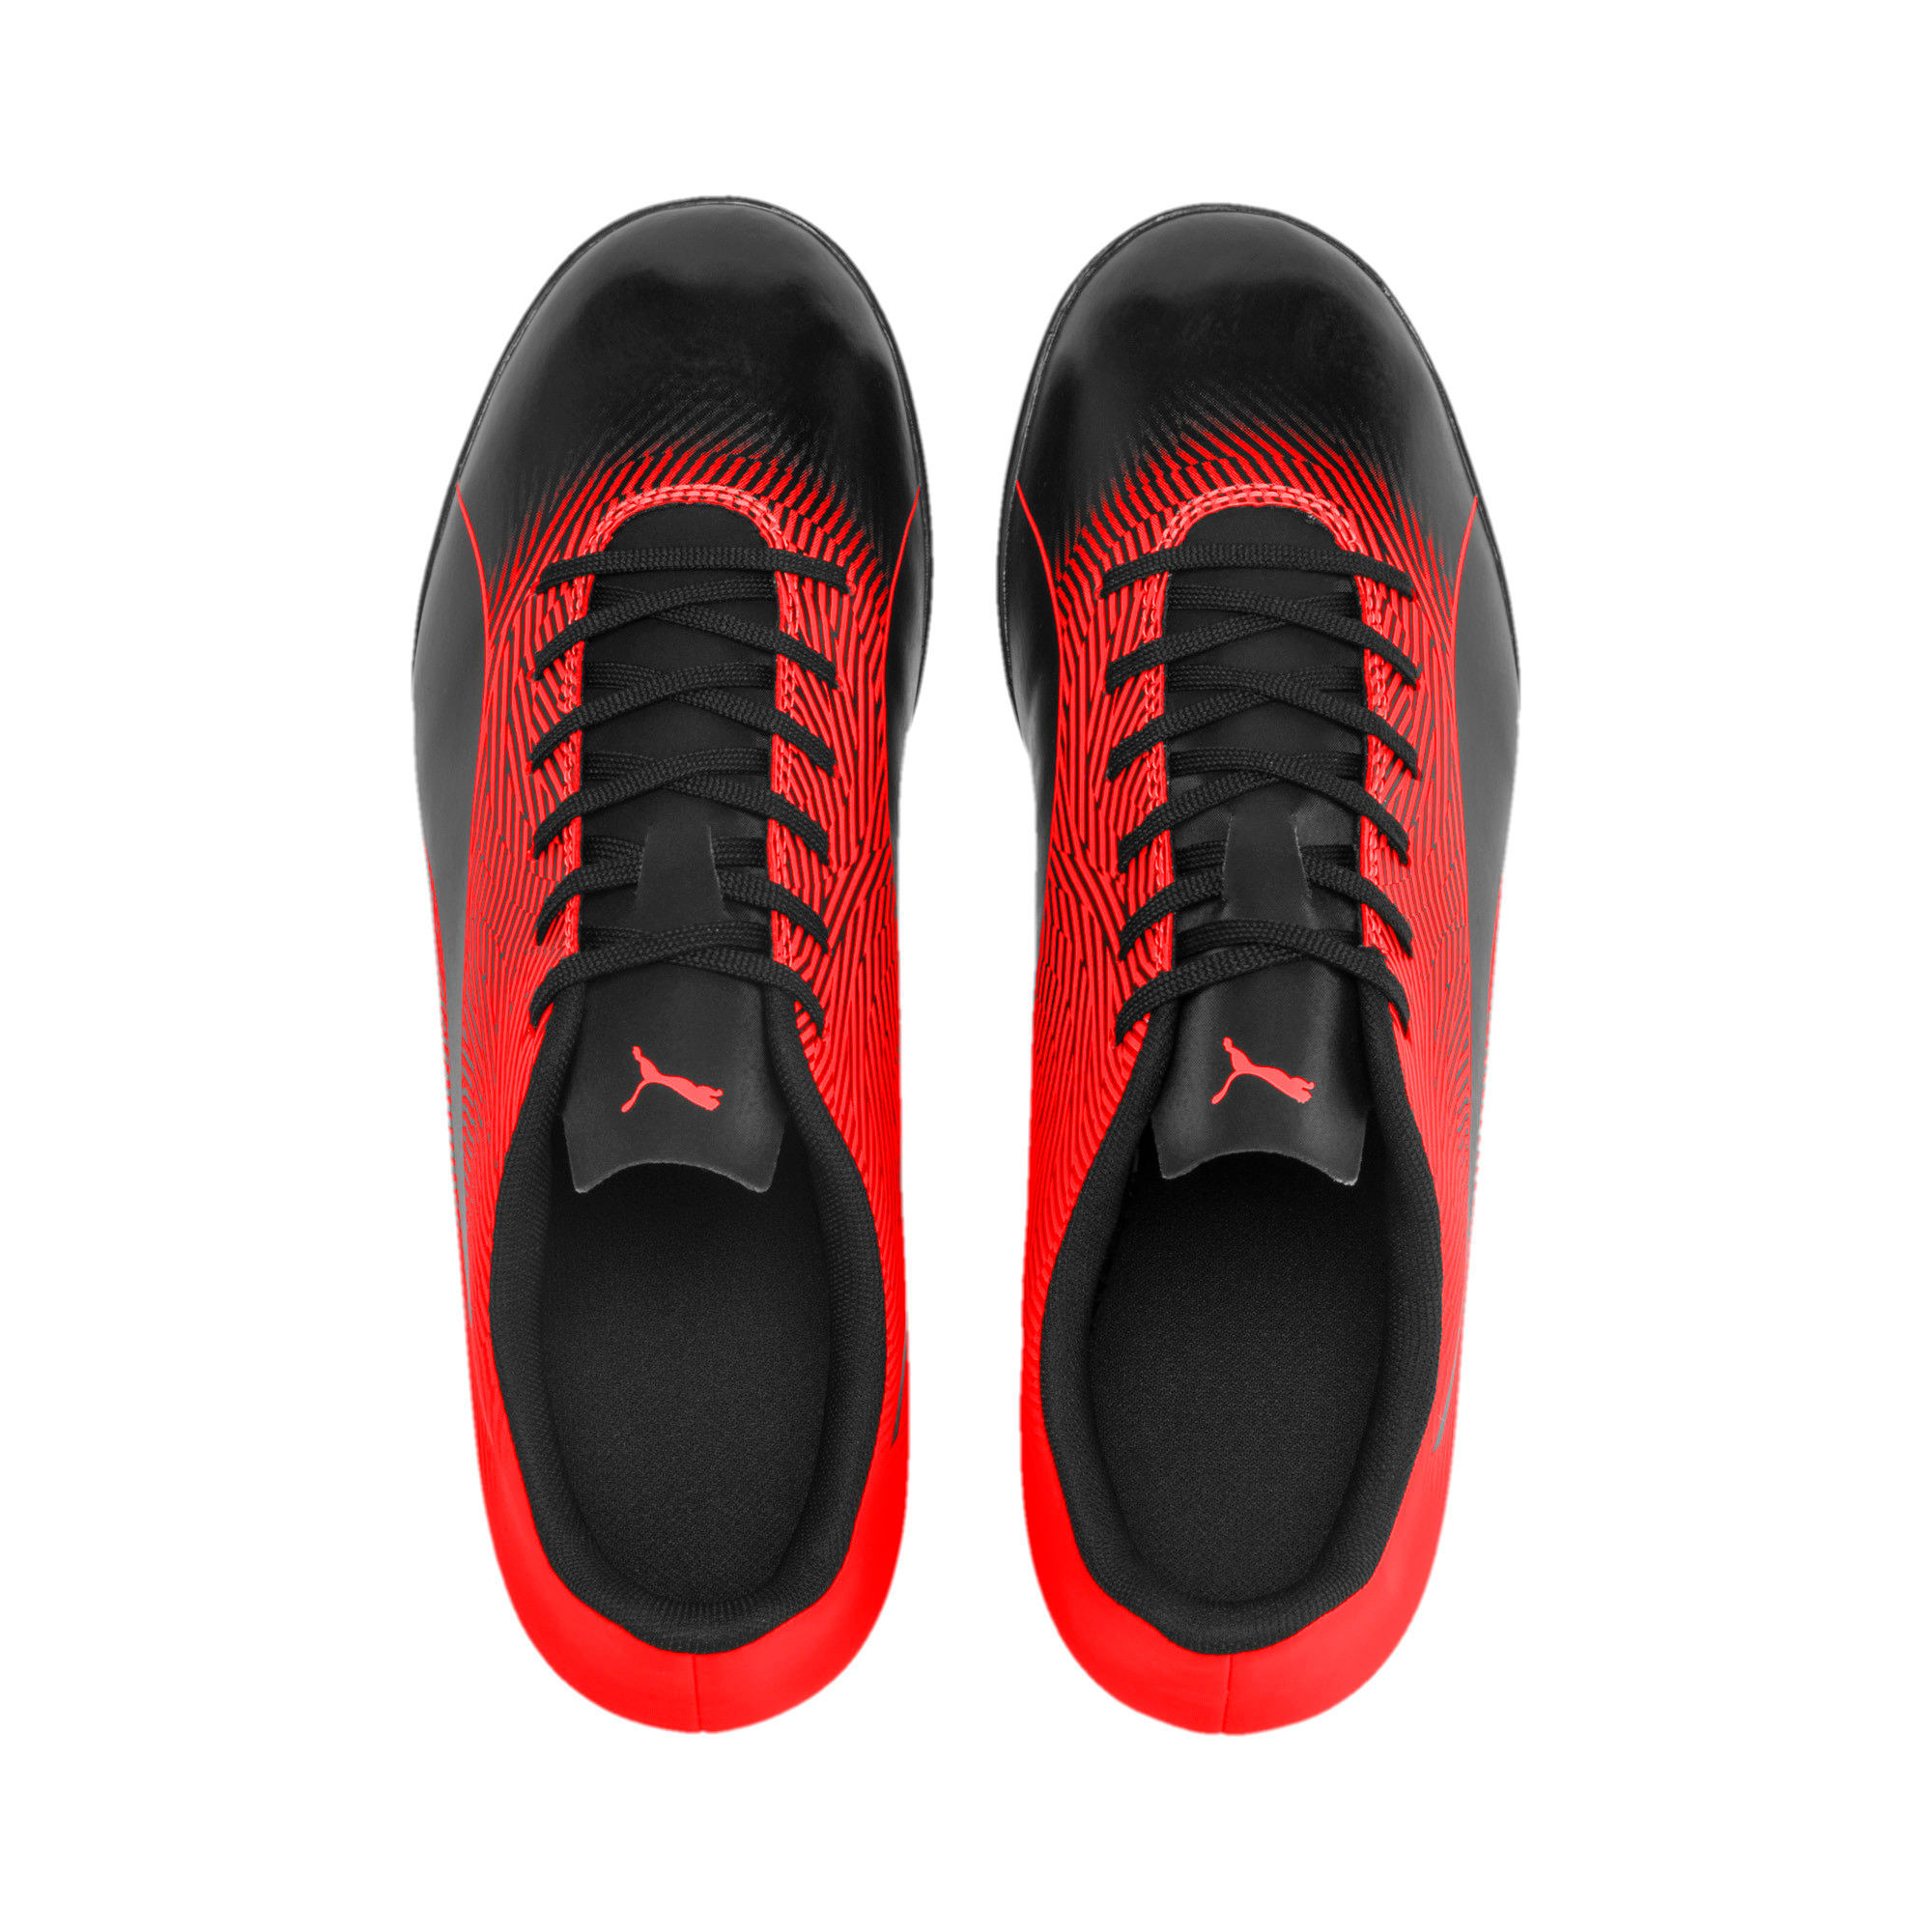 Thumbnail 7 of PUMA Spirit II TT Men's Soccer Shoes, Puma Black-Nrgy Red, medium